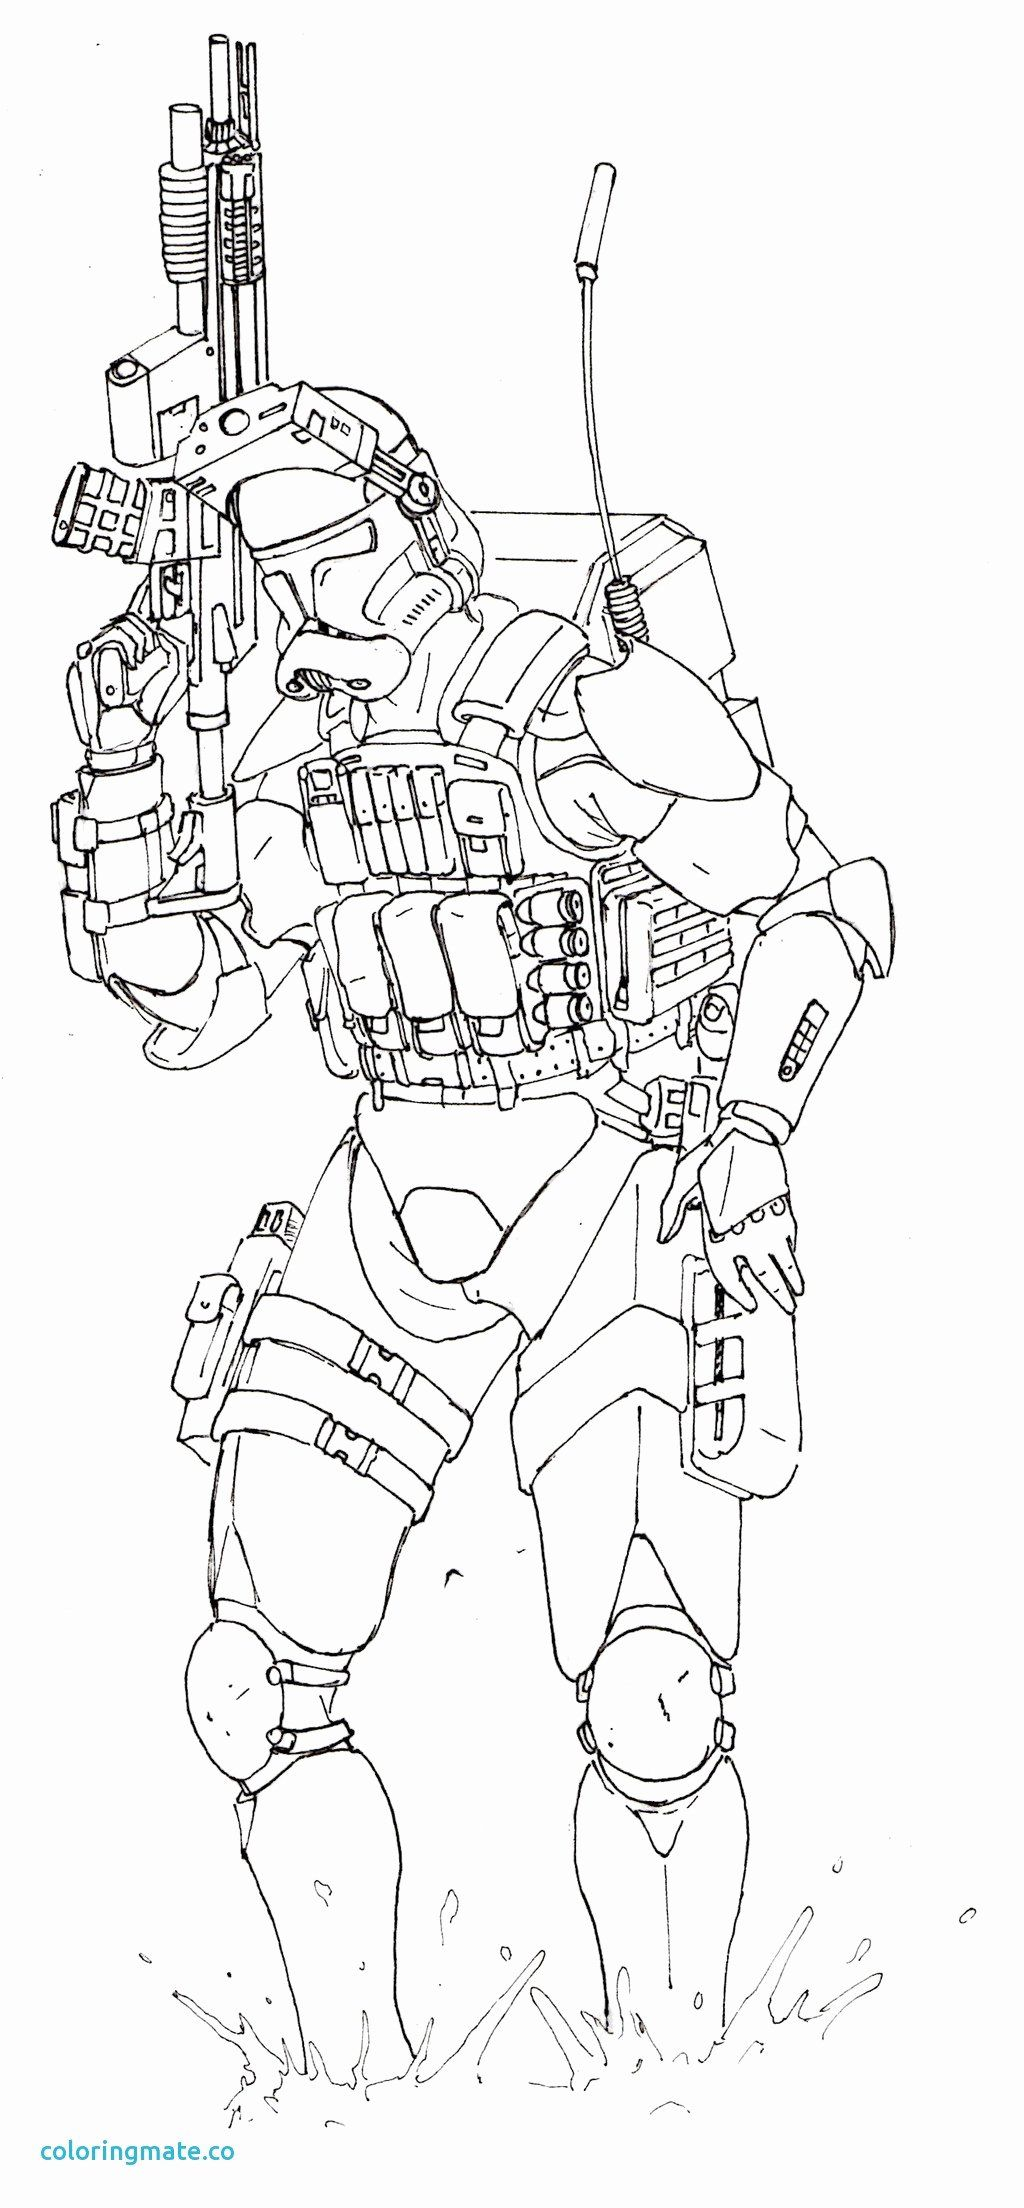 Clone Trooper Coloring Page New Clone Trooper Coloring Pages Neuhne Star Wars Clone Wars Coloring Pages Cartoon Coloring Pages